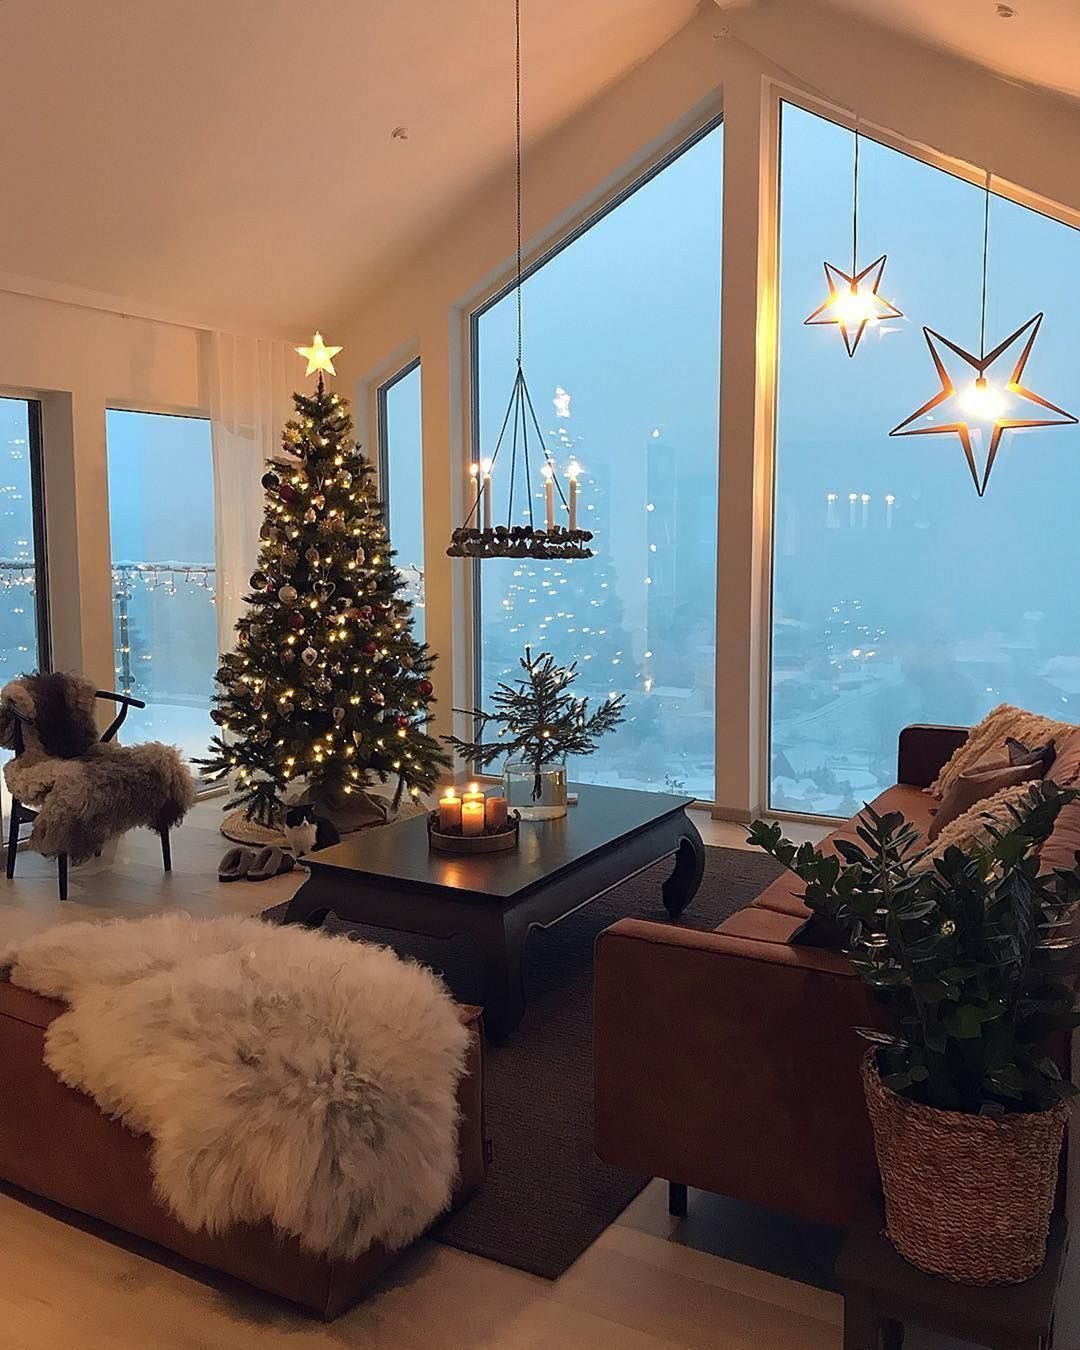 12 Awesome Winter Decoration Ideas You Have To Try At Your